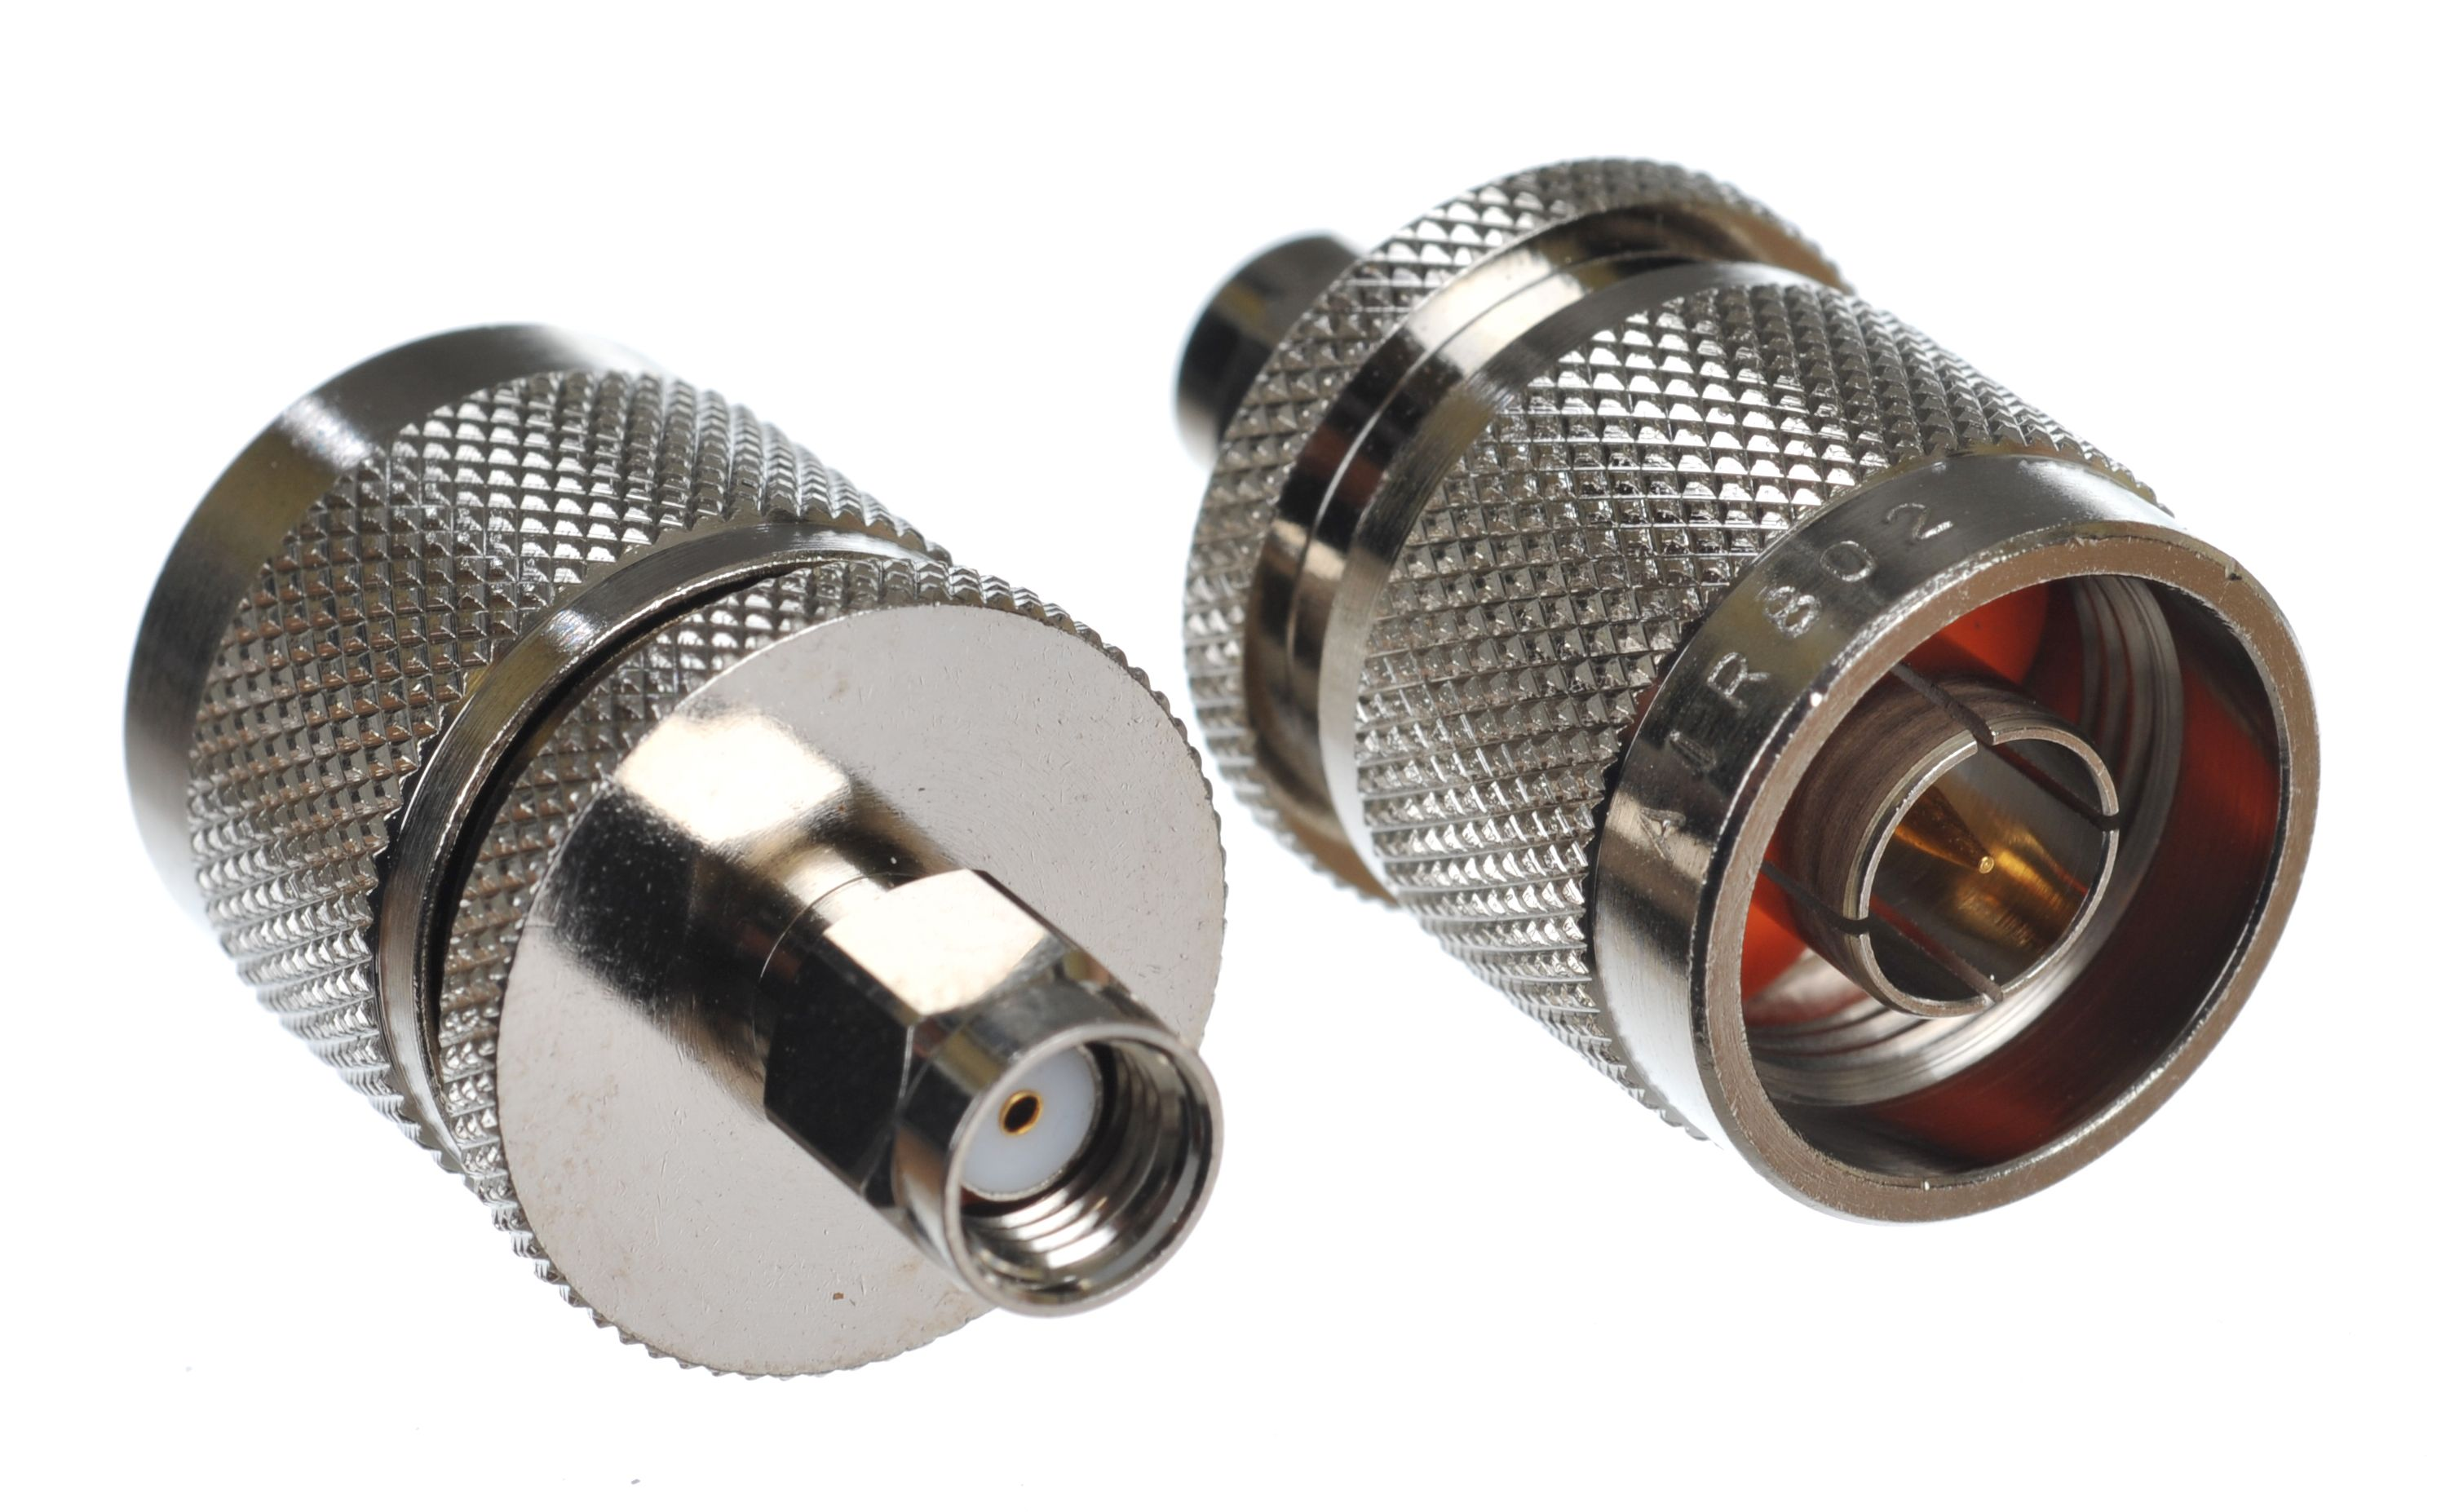 Coaxial inter-series adapter with the left-side showing the RP-SMA plug-male and the right-side the N plug-male connector.